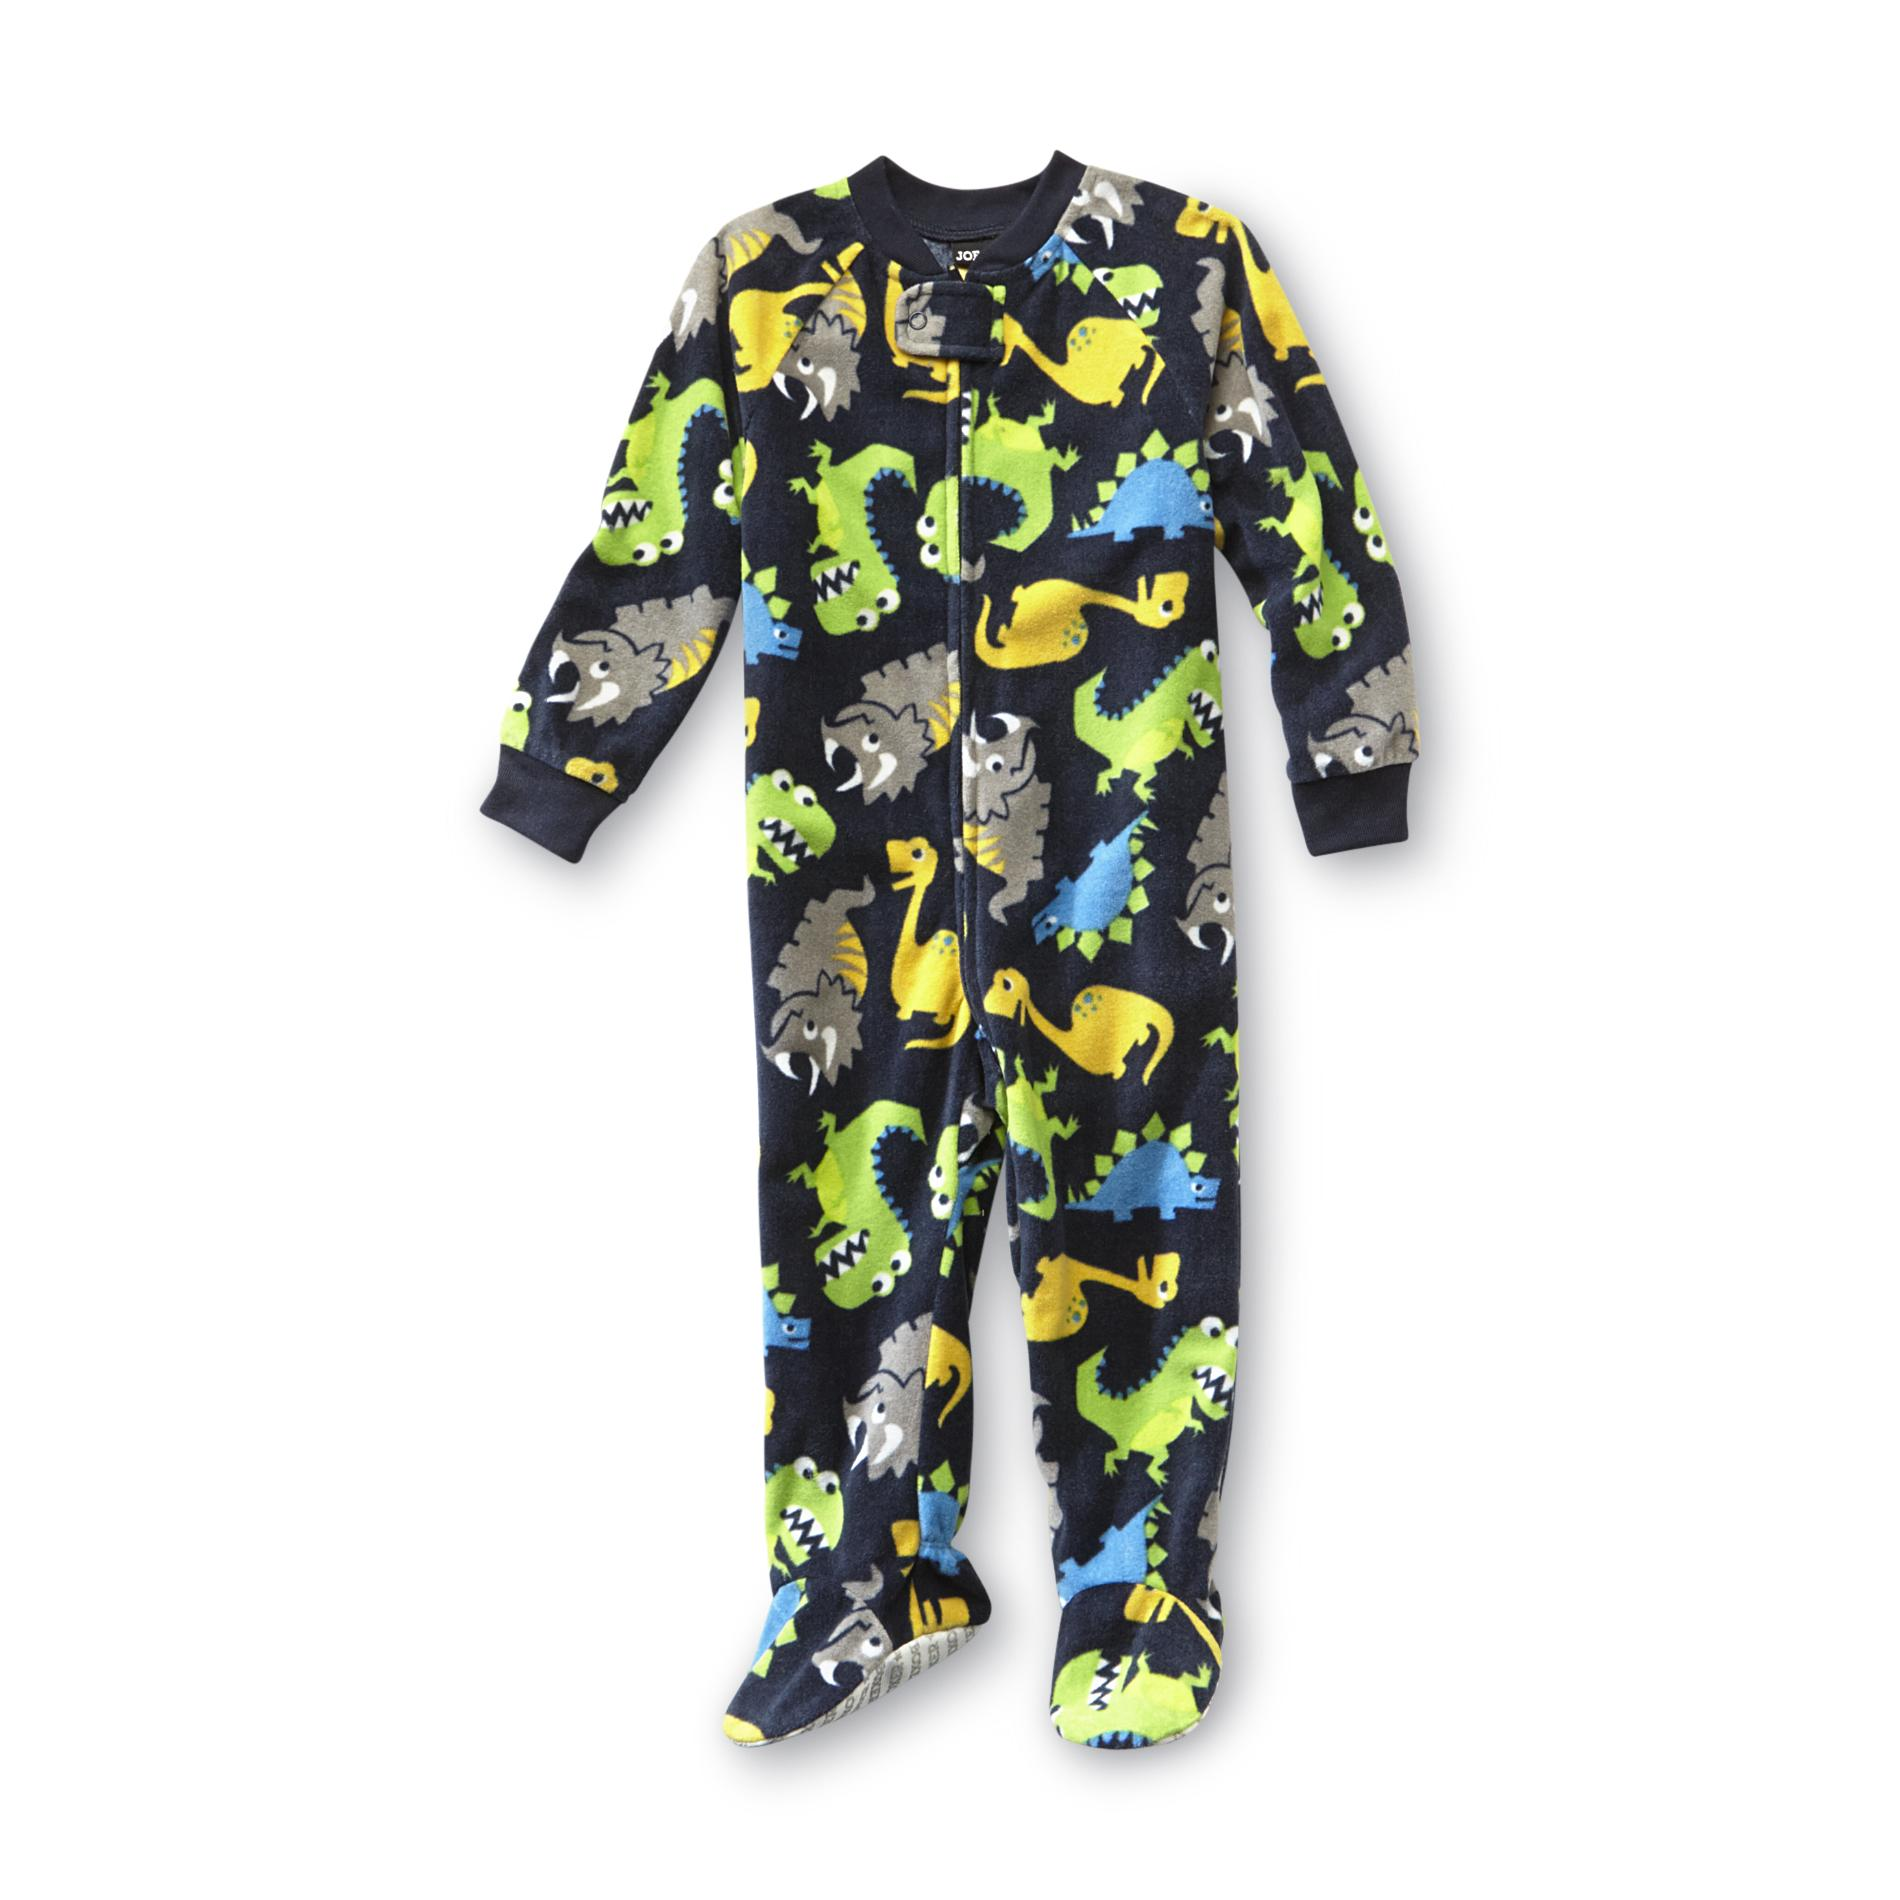 Infant & Toddler Boy's Footed Sleeper Pajamas